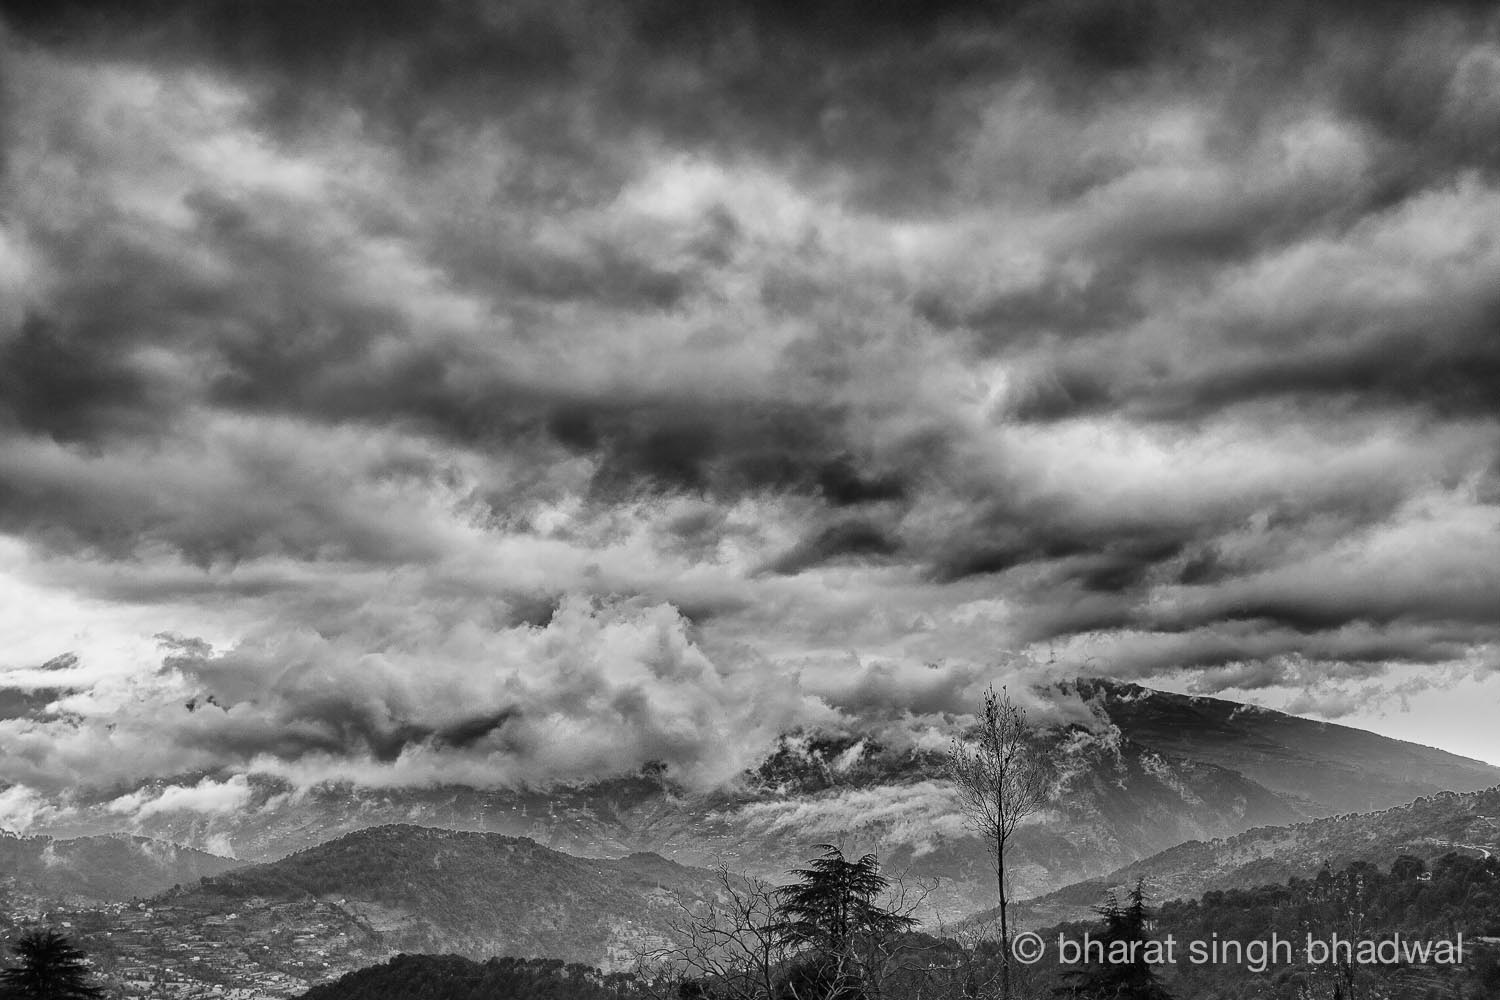 Dark cumulous clouds over Shivalik range, Indian Himalayas.